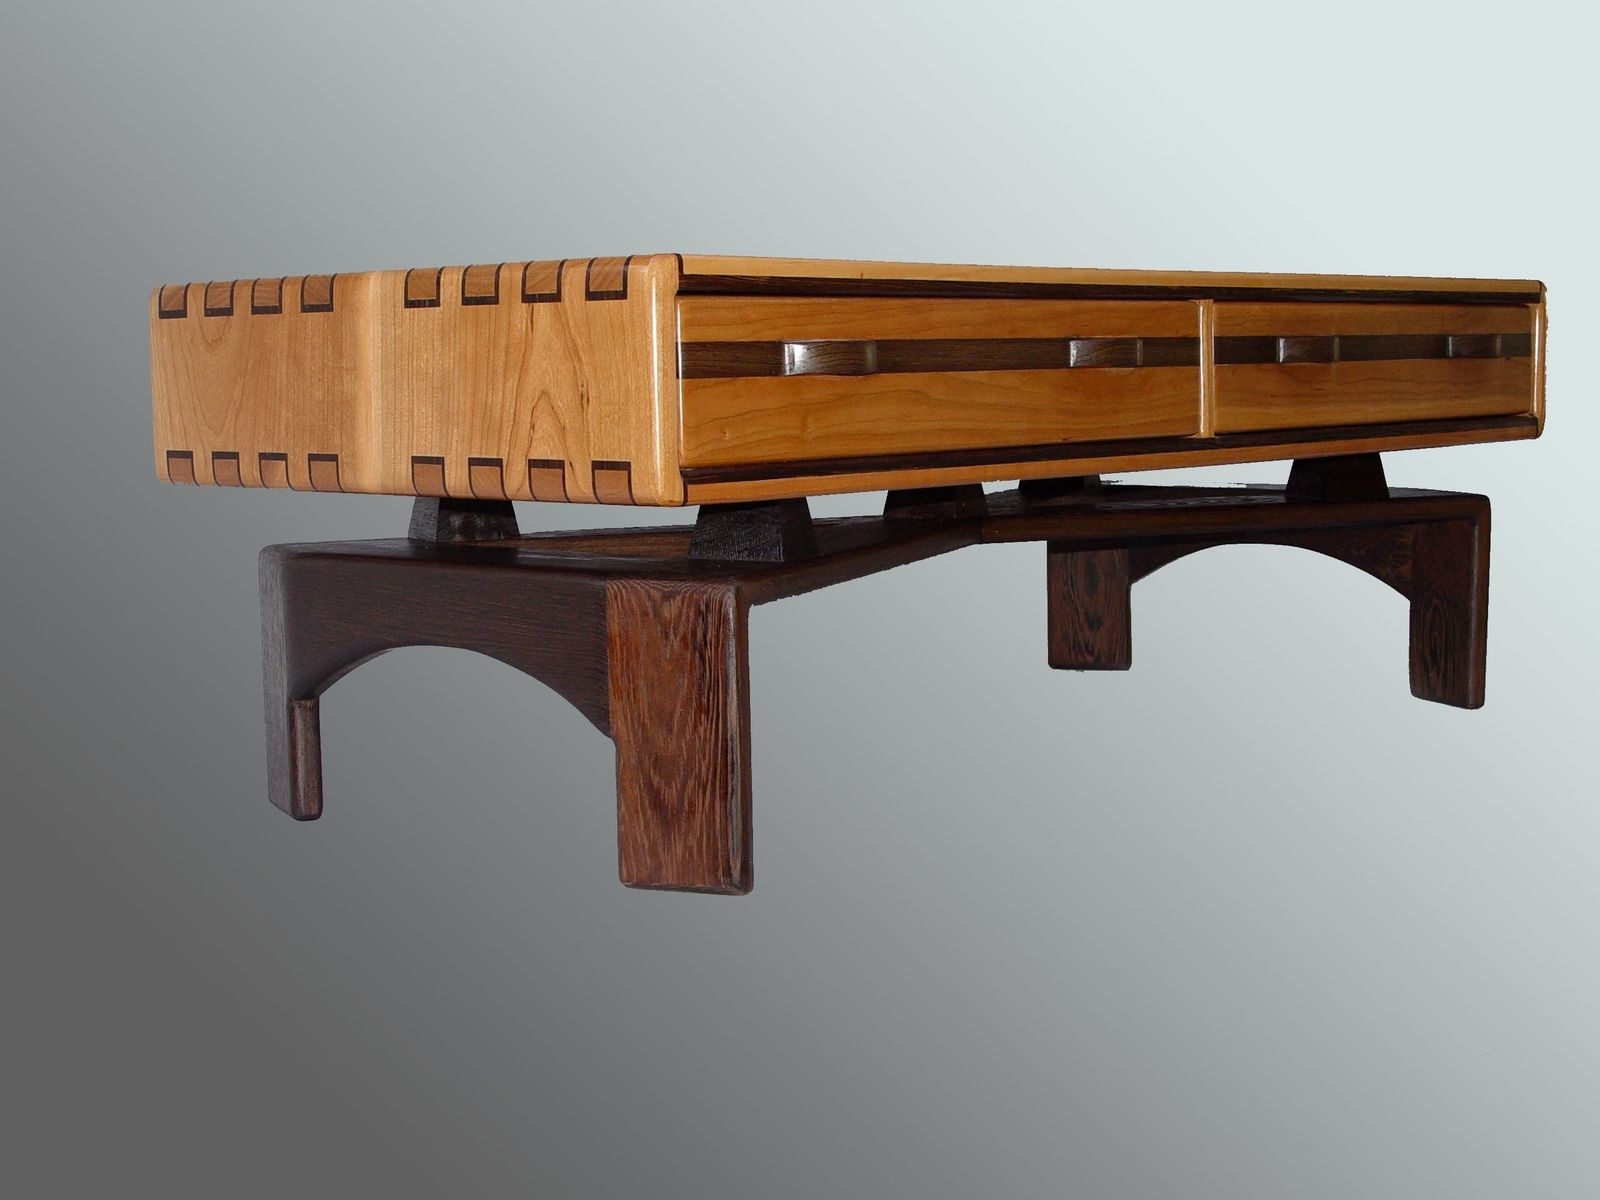 hand crafted cherry and wenge coffee table by jon s manss  - custom made cherry and wenge coffee table